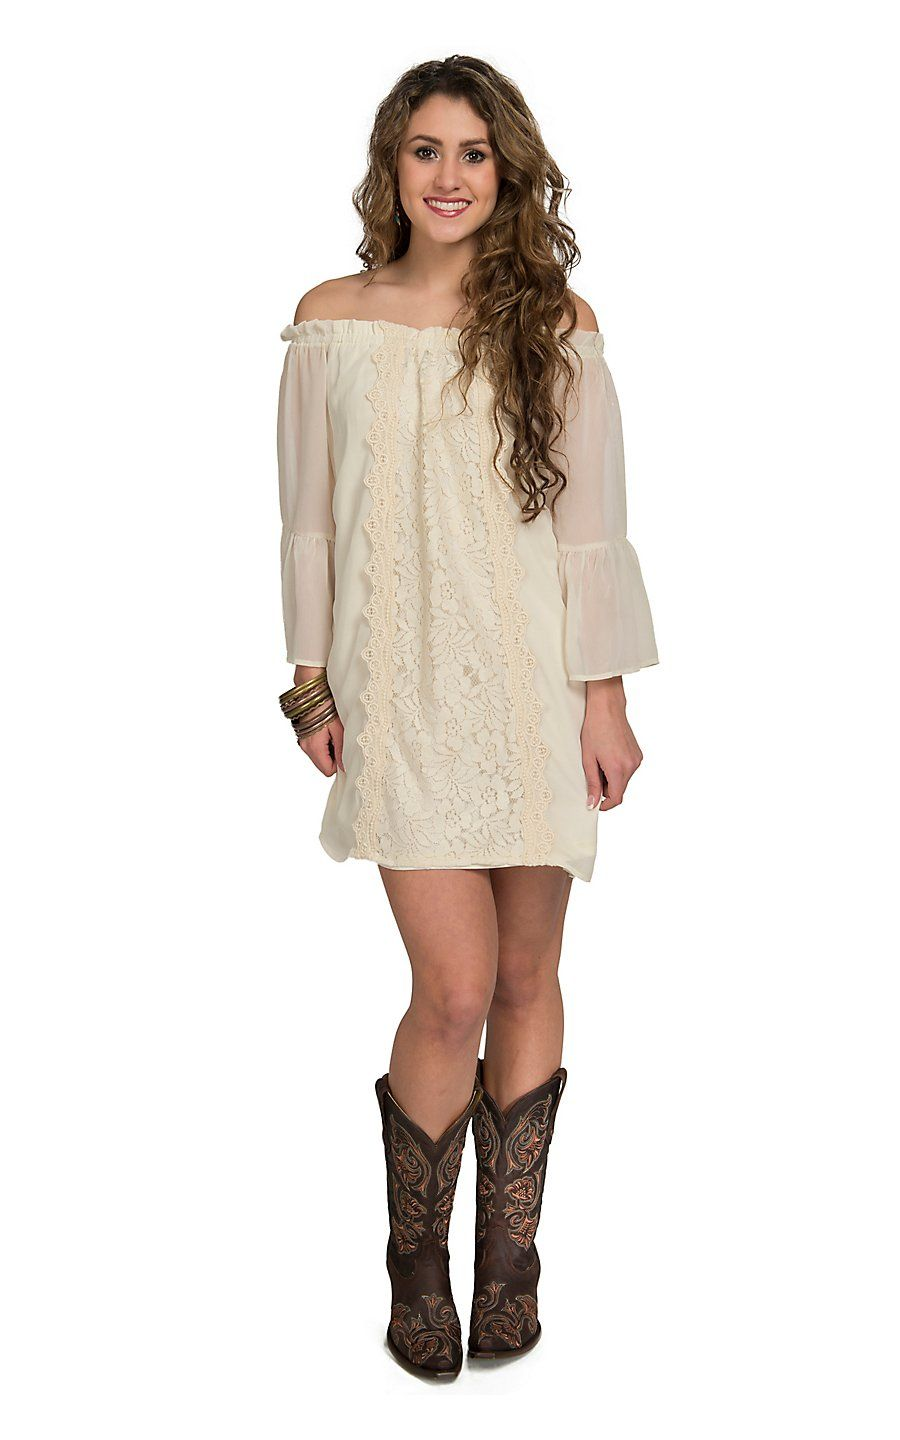 369399400c7 Flying Tomato Women s Ivory Chiffon with Lace   Crochet 3 4 Bell Sleeve  Dress- Plus Sizes